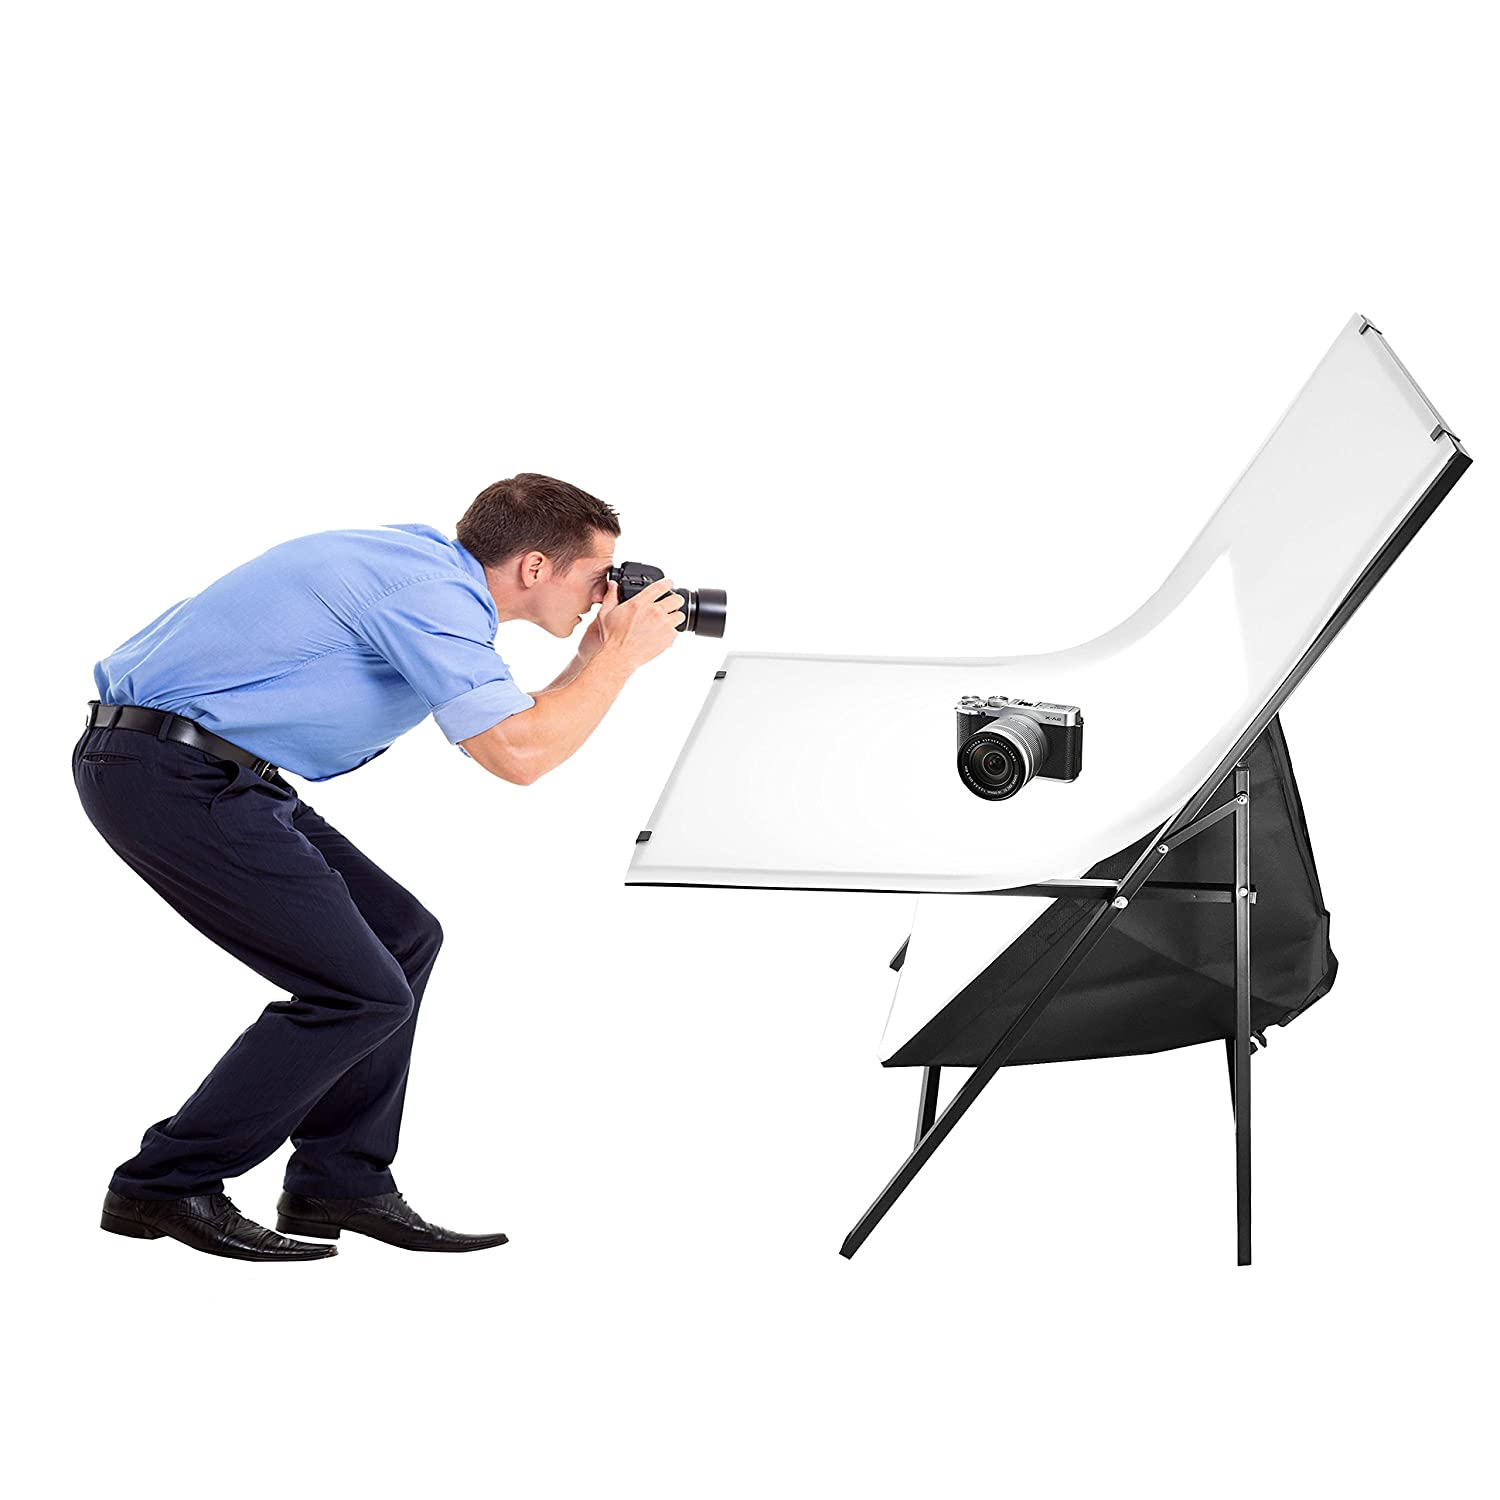 Foto&Tech Portable Non-Reflective Still Life Shooting Metal Frame Foldable Table with 58cm x 98cm Pure White Plexiglass Panel Cover Photo Studio Bench Easy Set Up without tools STUDIO TABLE